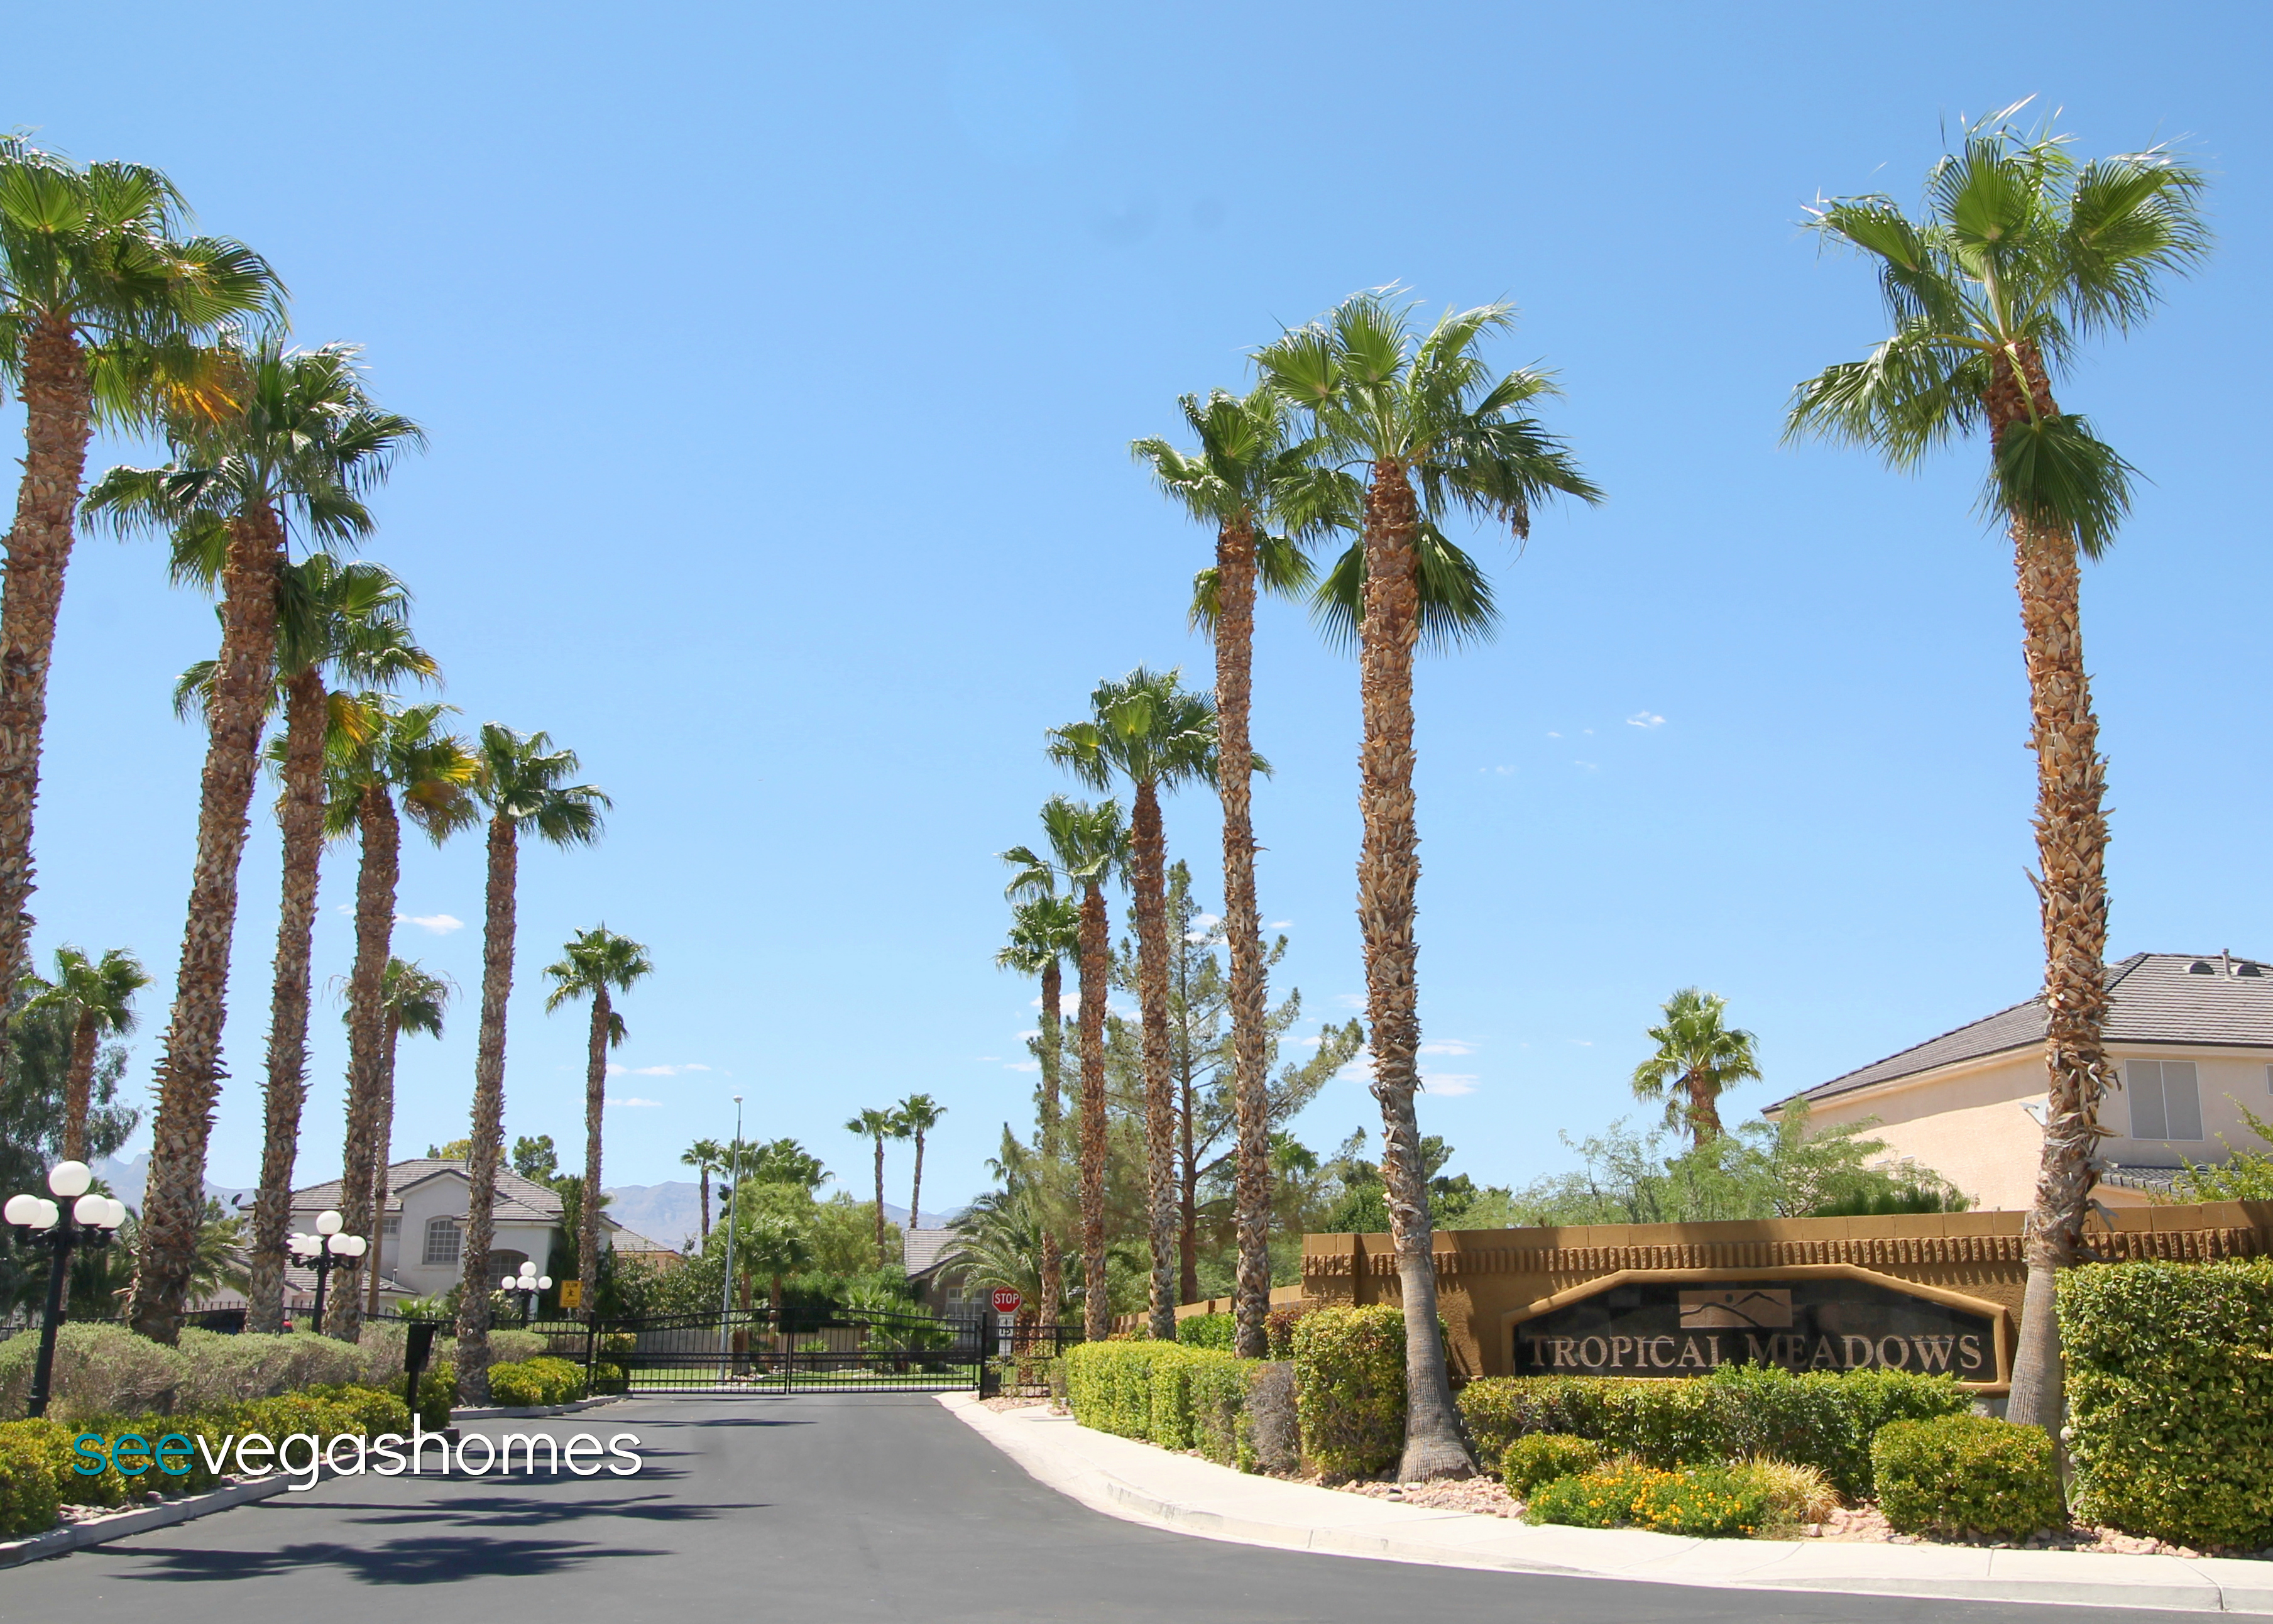 Tropical Meadows Las Vegas NV 89131 SeeVegasHomes